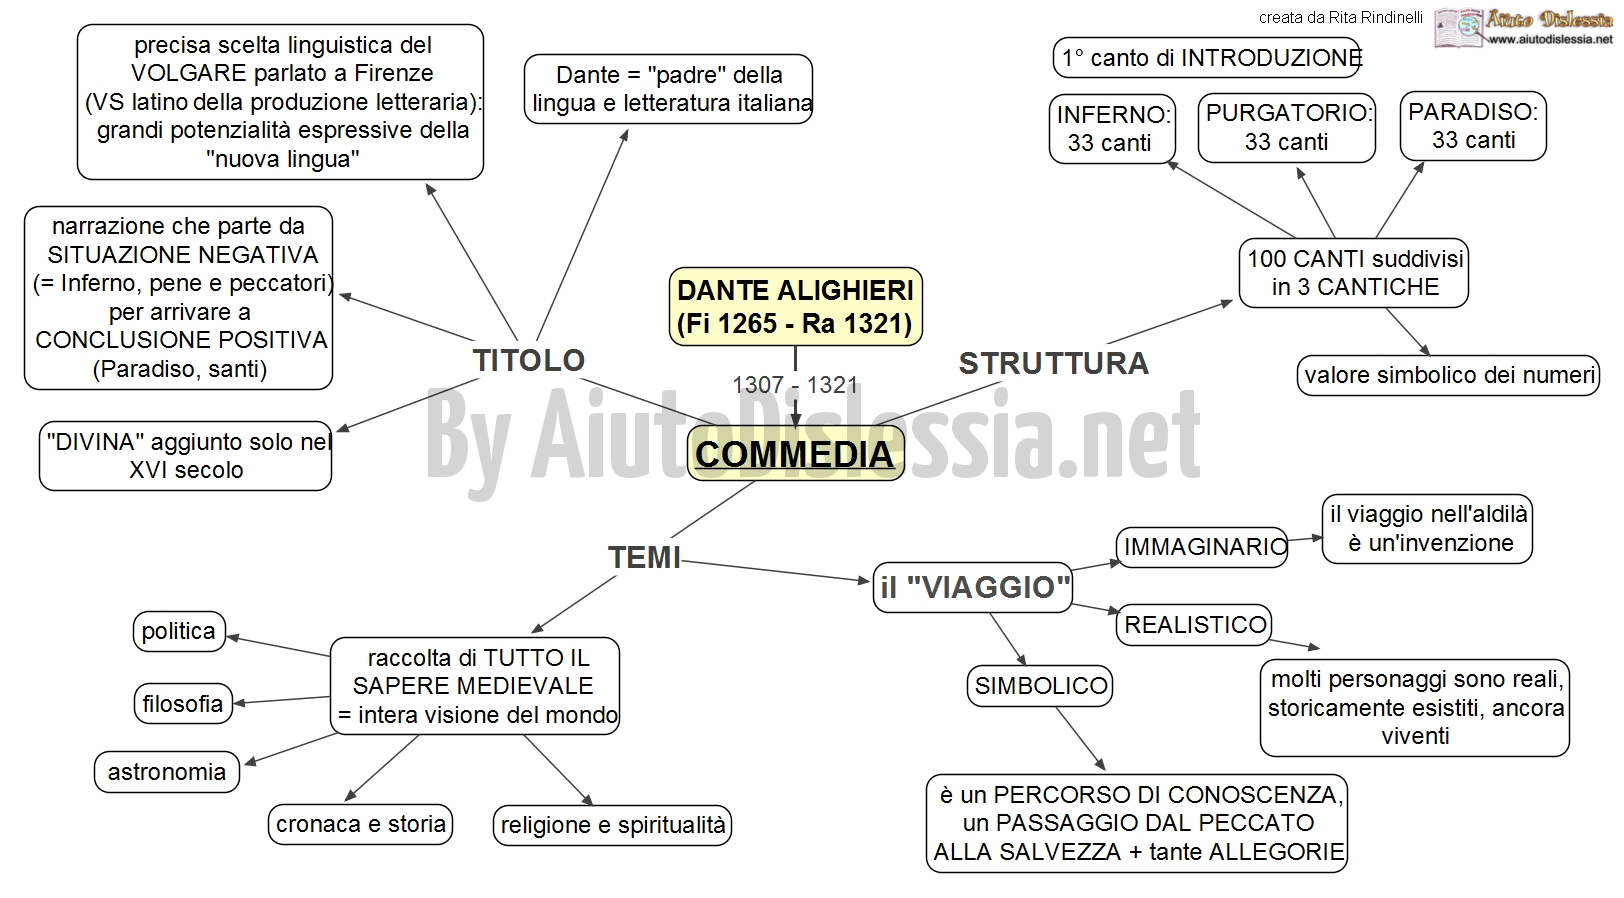 an analysis of the various tools of dante alighieri employees in the commedia Paradiso (la divina commedia book 3) ebook: dante alighieri, barry moser, allen mandelbaum: amazonin: kindle store amazon try prime kindle store go search hello sign in your orders sign in your orders try prime your lists cart 0 shop by category your amazonin.